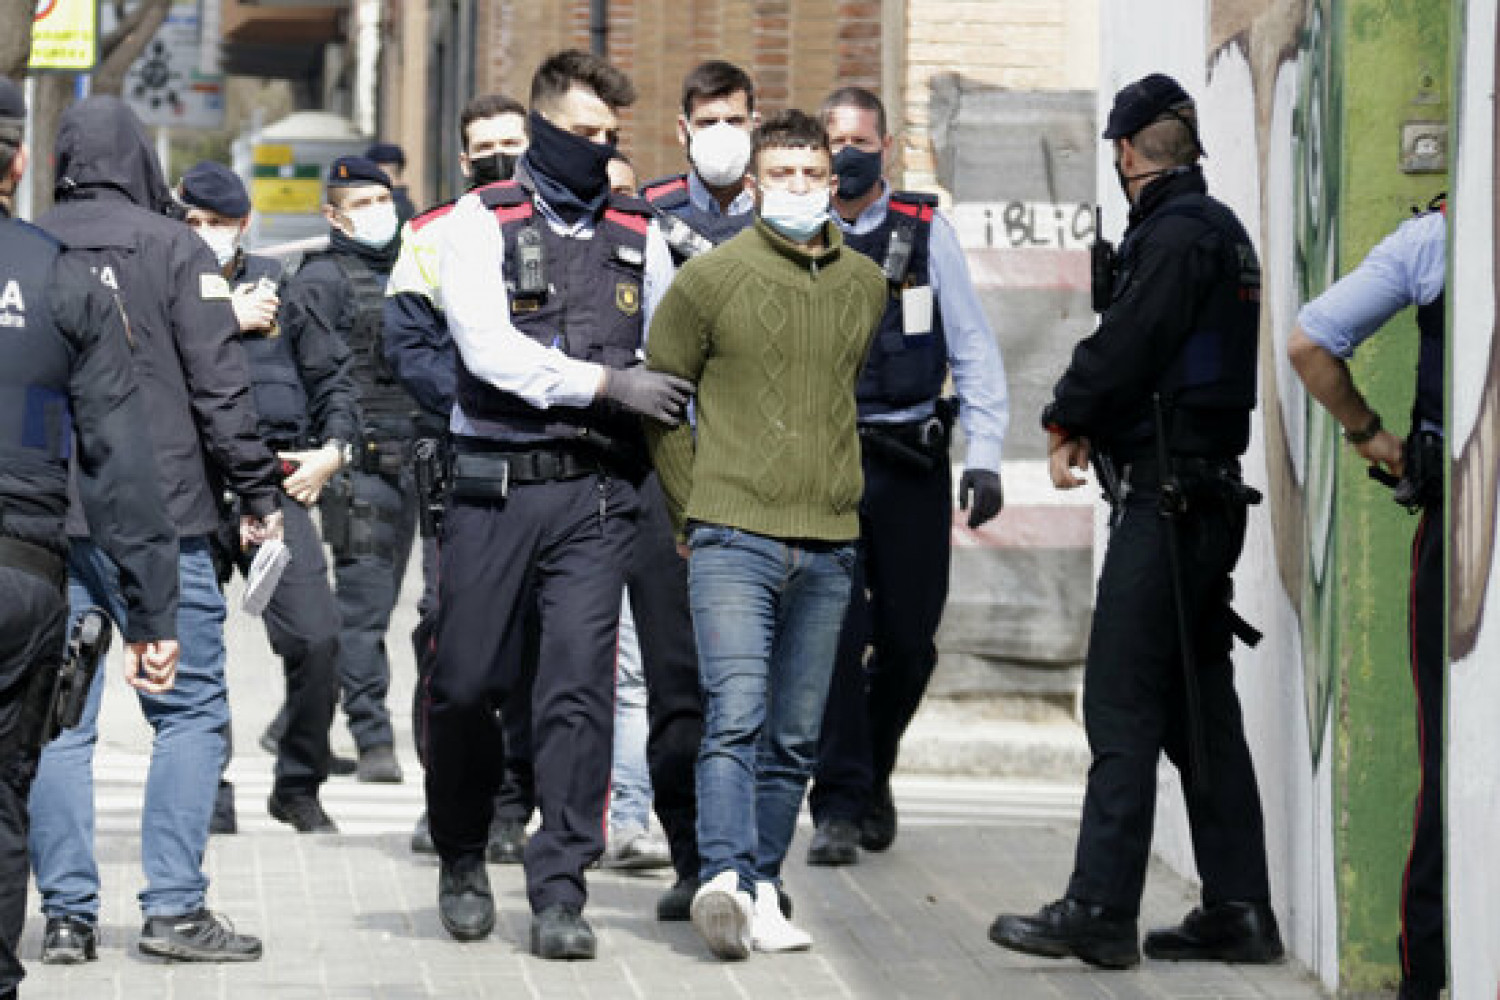 One person is arrested in Mataró in connection with a wave of altercations in Barcelona (by Jordi Pujolar)